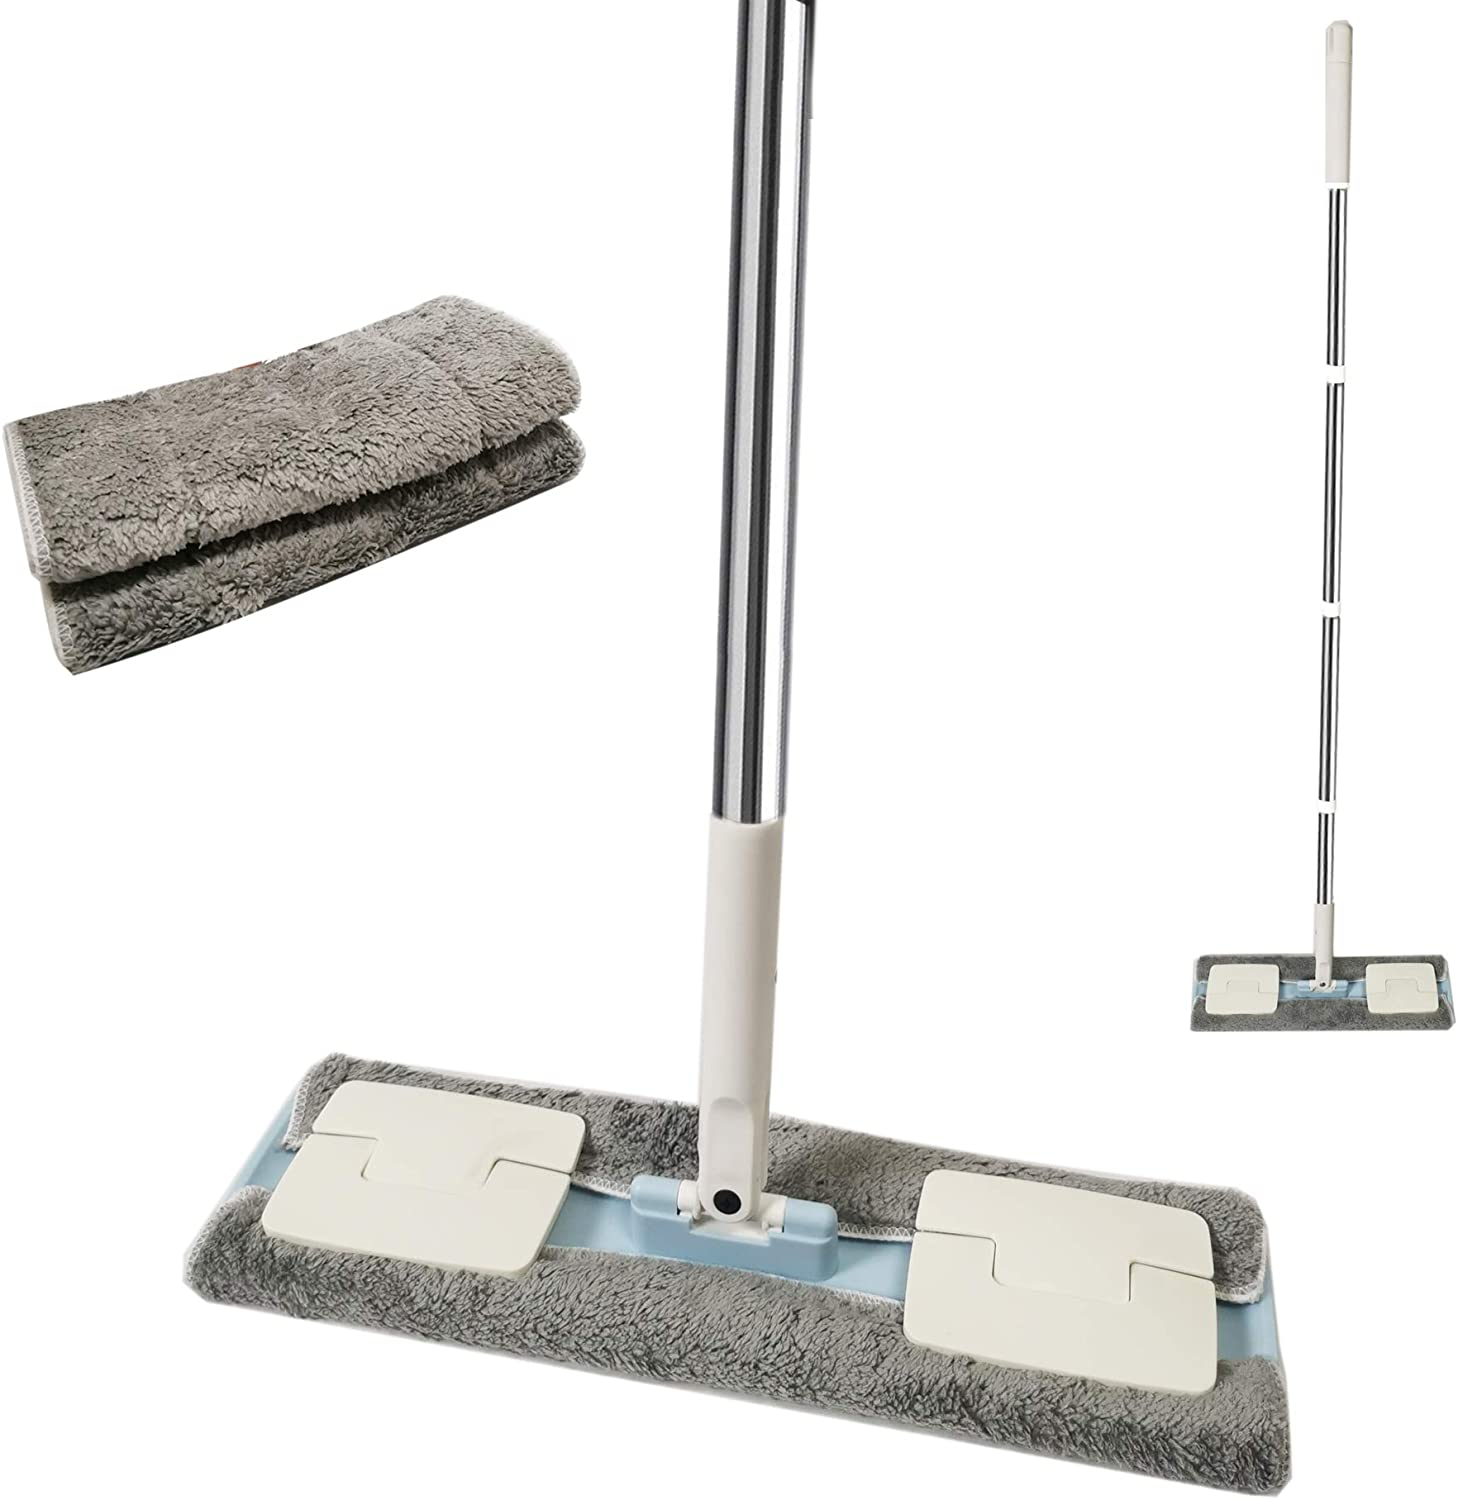 EZ SPARES Hardwood Floor Mop,with 2 Washable Wet/Dry Microfiber Pads,Stainless Steel Handle and Extension,for Home,Office Wet or Dry Floor,Swob for Tile Cleaning,Wall Cleaning(Blue)